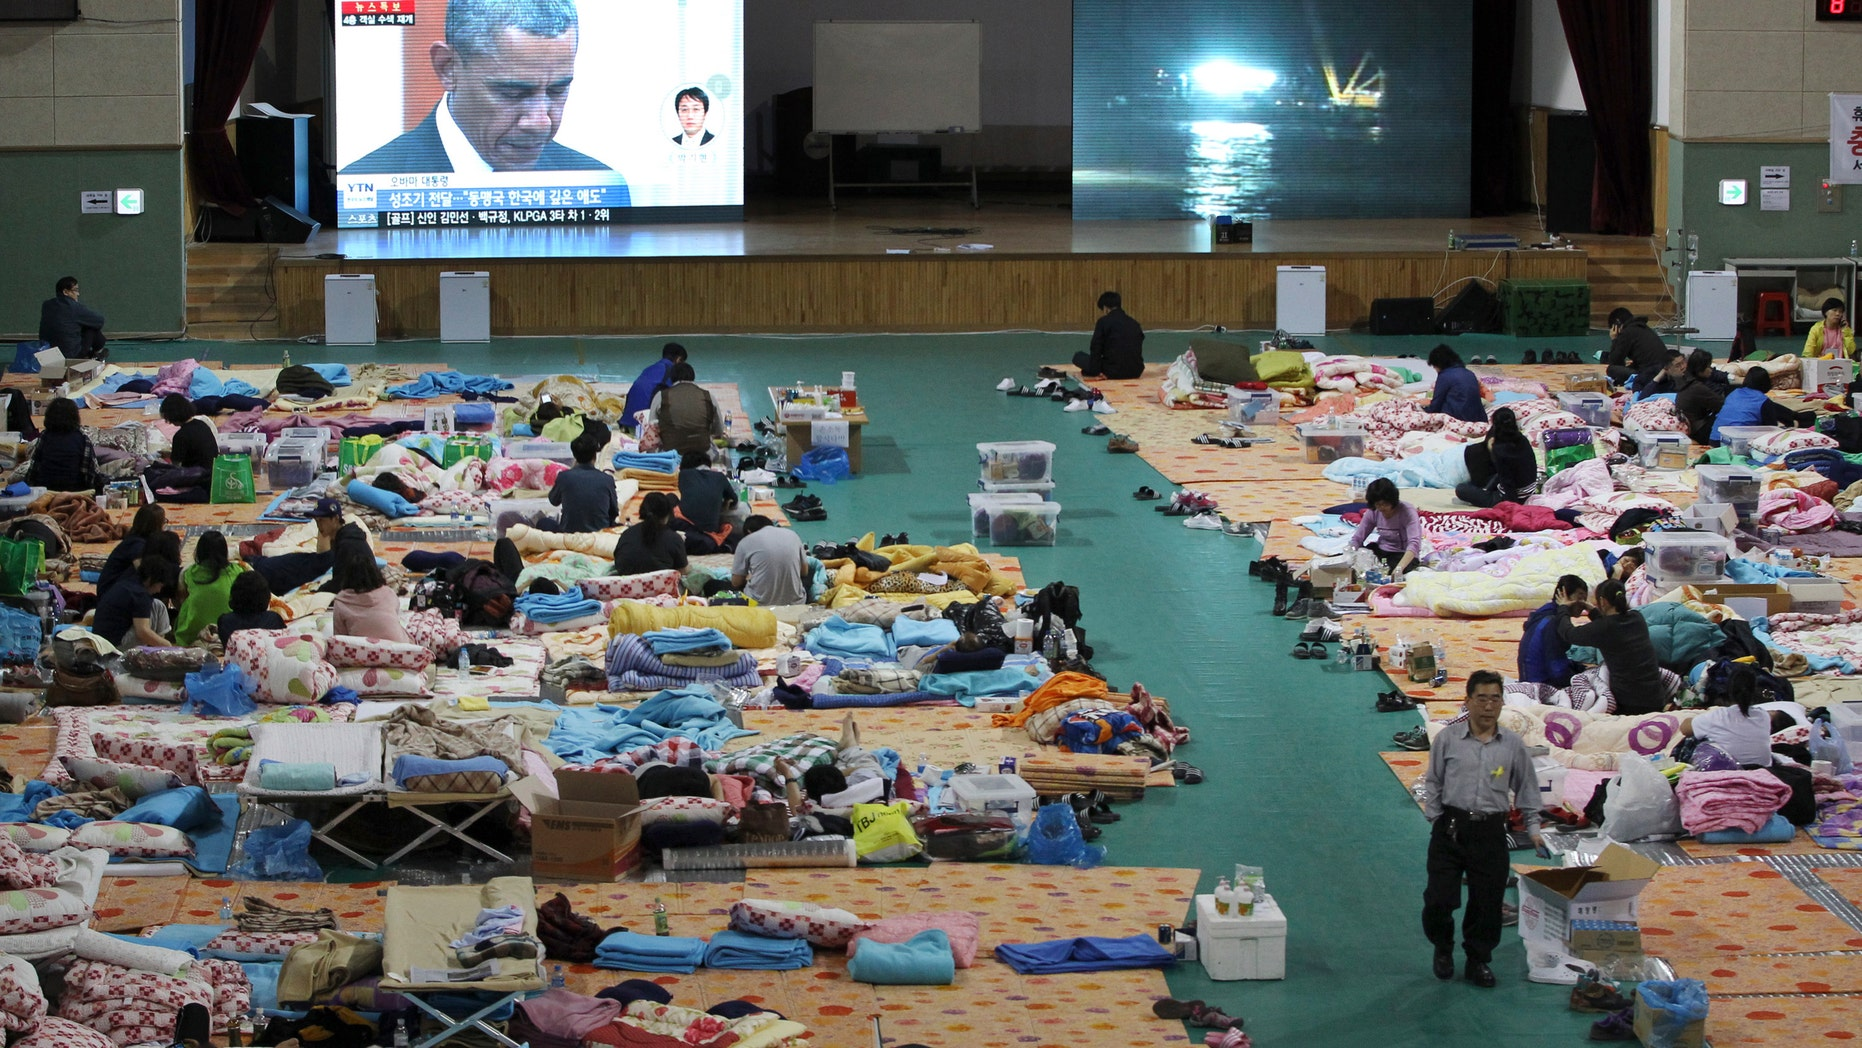 April 25, 2014 - A TV screen shows Pres. Obama paying silent tribute for the victims of South Korea's sunken ferry Sewol during a summit meeting with South Korean President Park Geun-hye as relatives of victims look on at a gymnasium in Jindo, South Korea. The South Korean government conceded that some bodies have been misidentified and announced changes to prevent such mistakes from happening again.